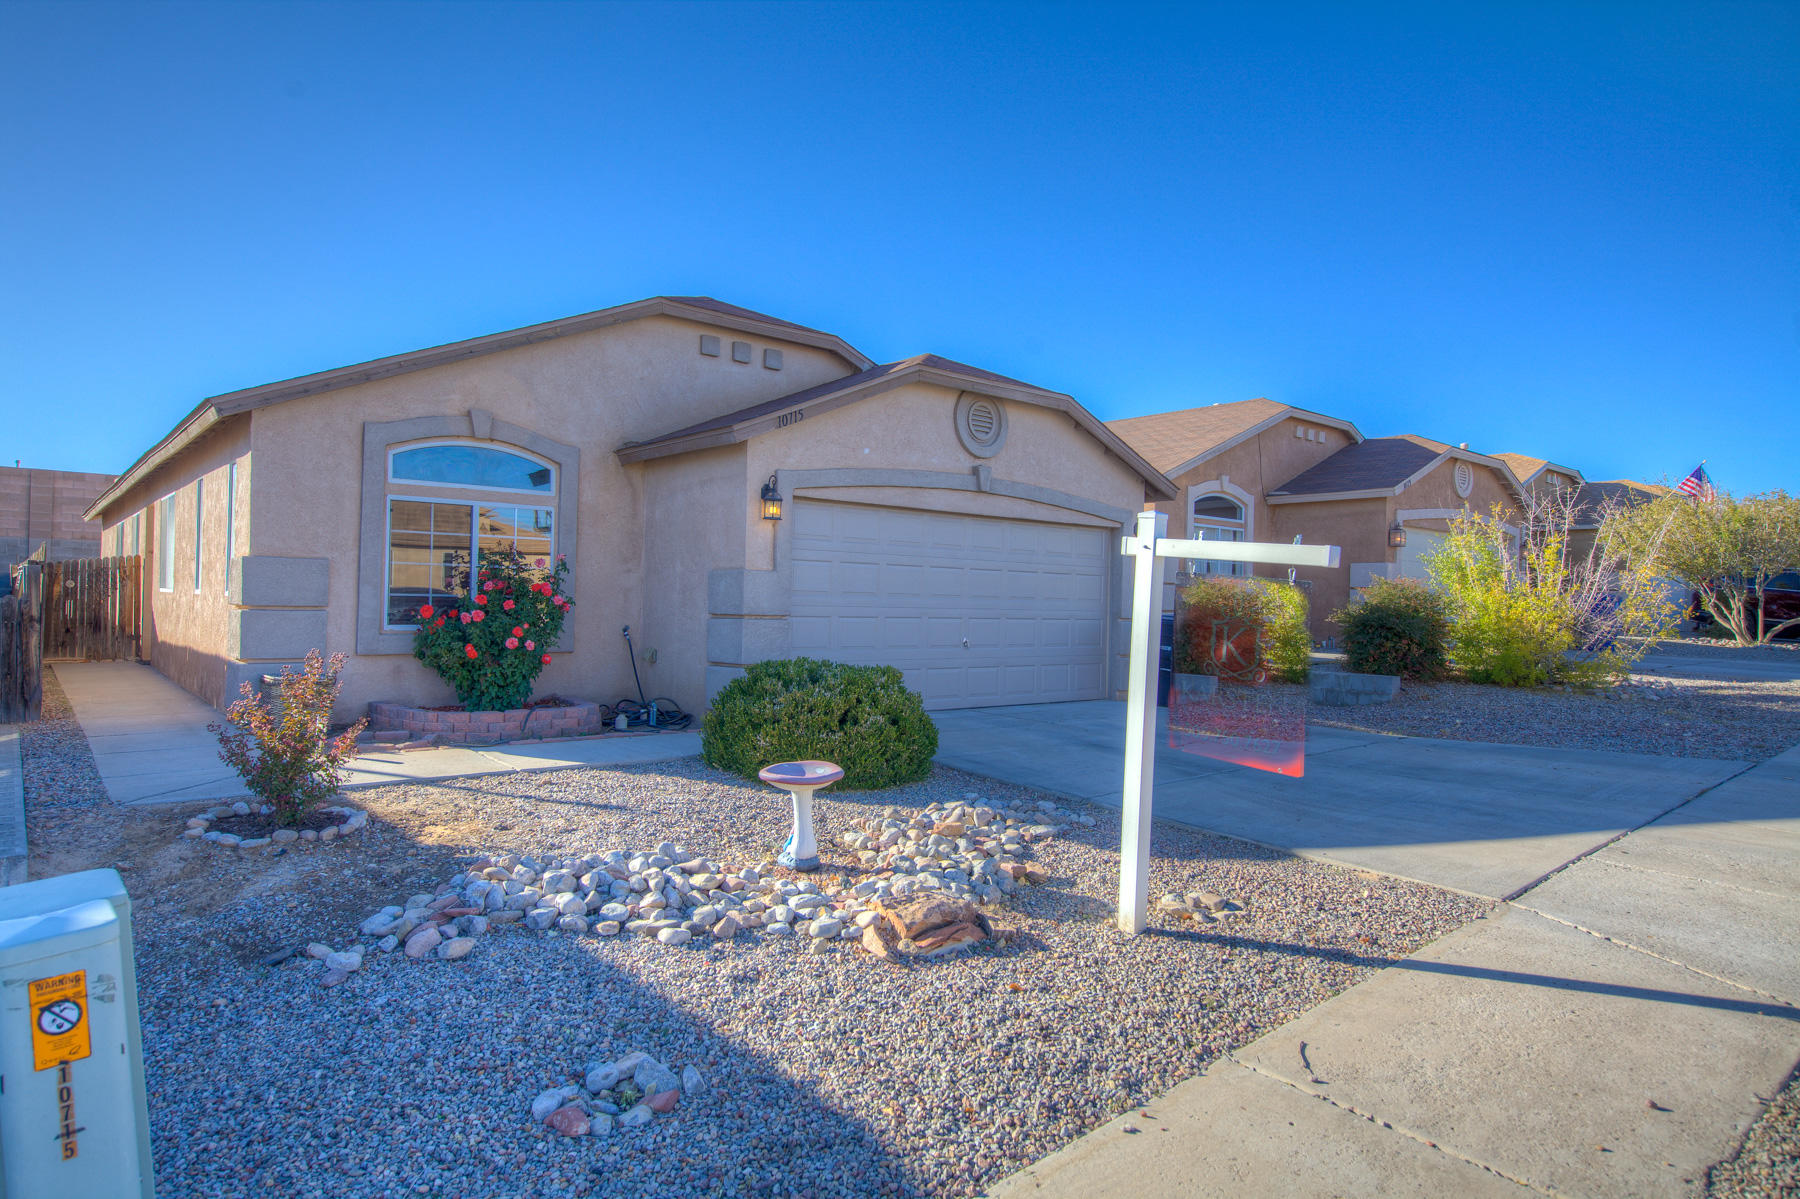 Beautiful home in desirable location. Enjoy this Longford single story home. 3 bedroom 2 bath with 2 living areas and nice kitchen with open access to family room. Master is inviting with walk in closet separate shower and tub. Make offer today.